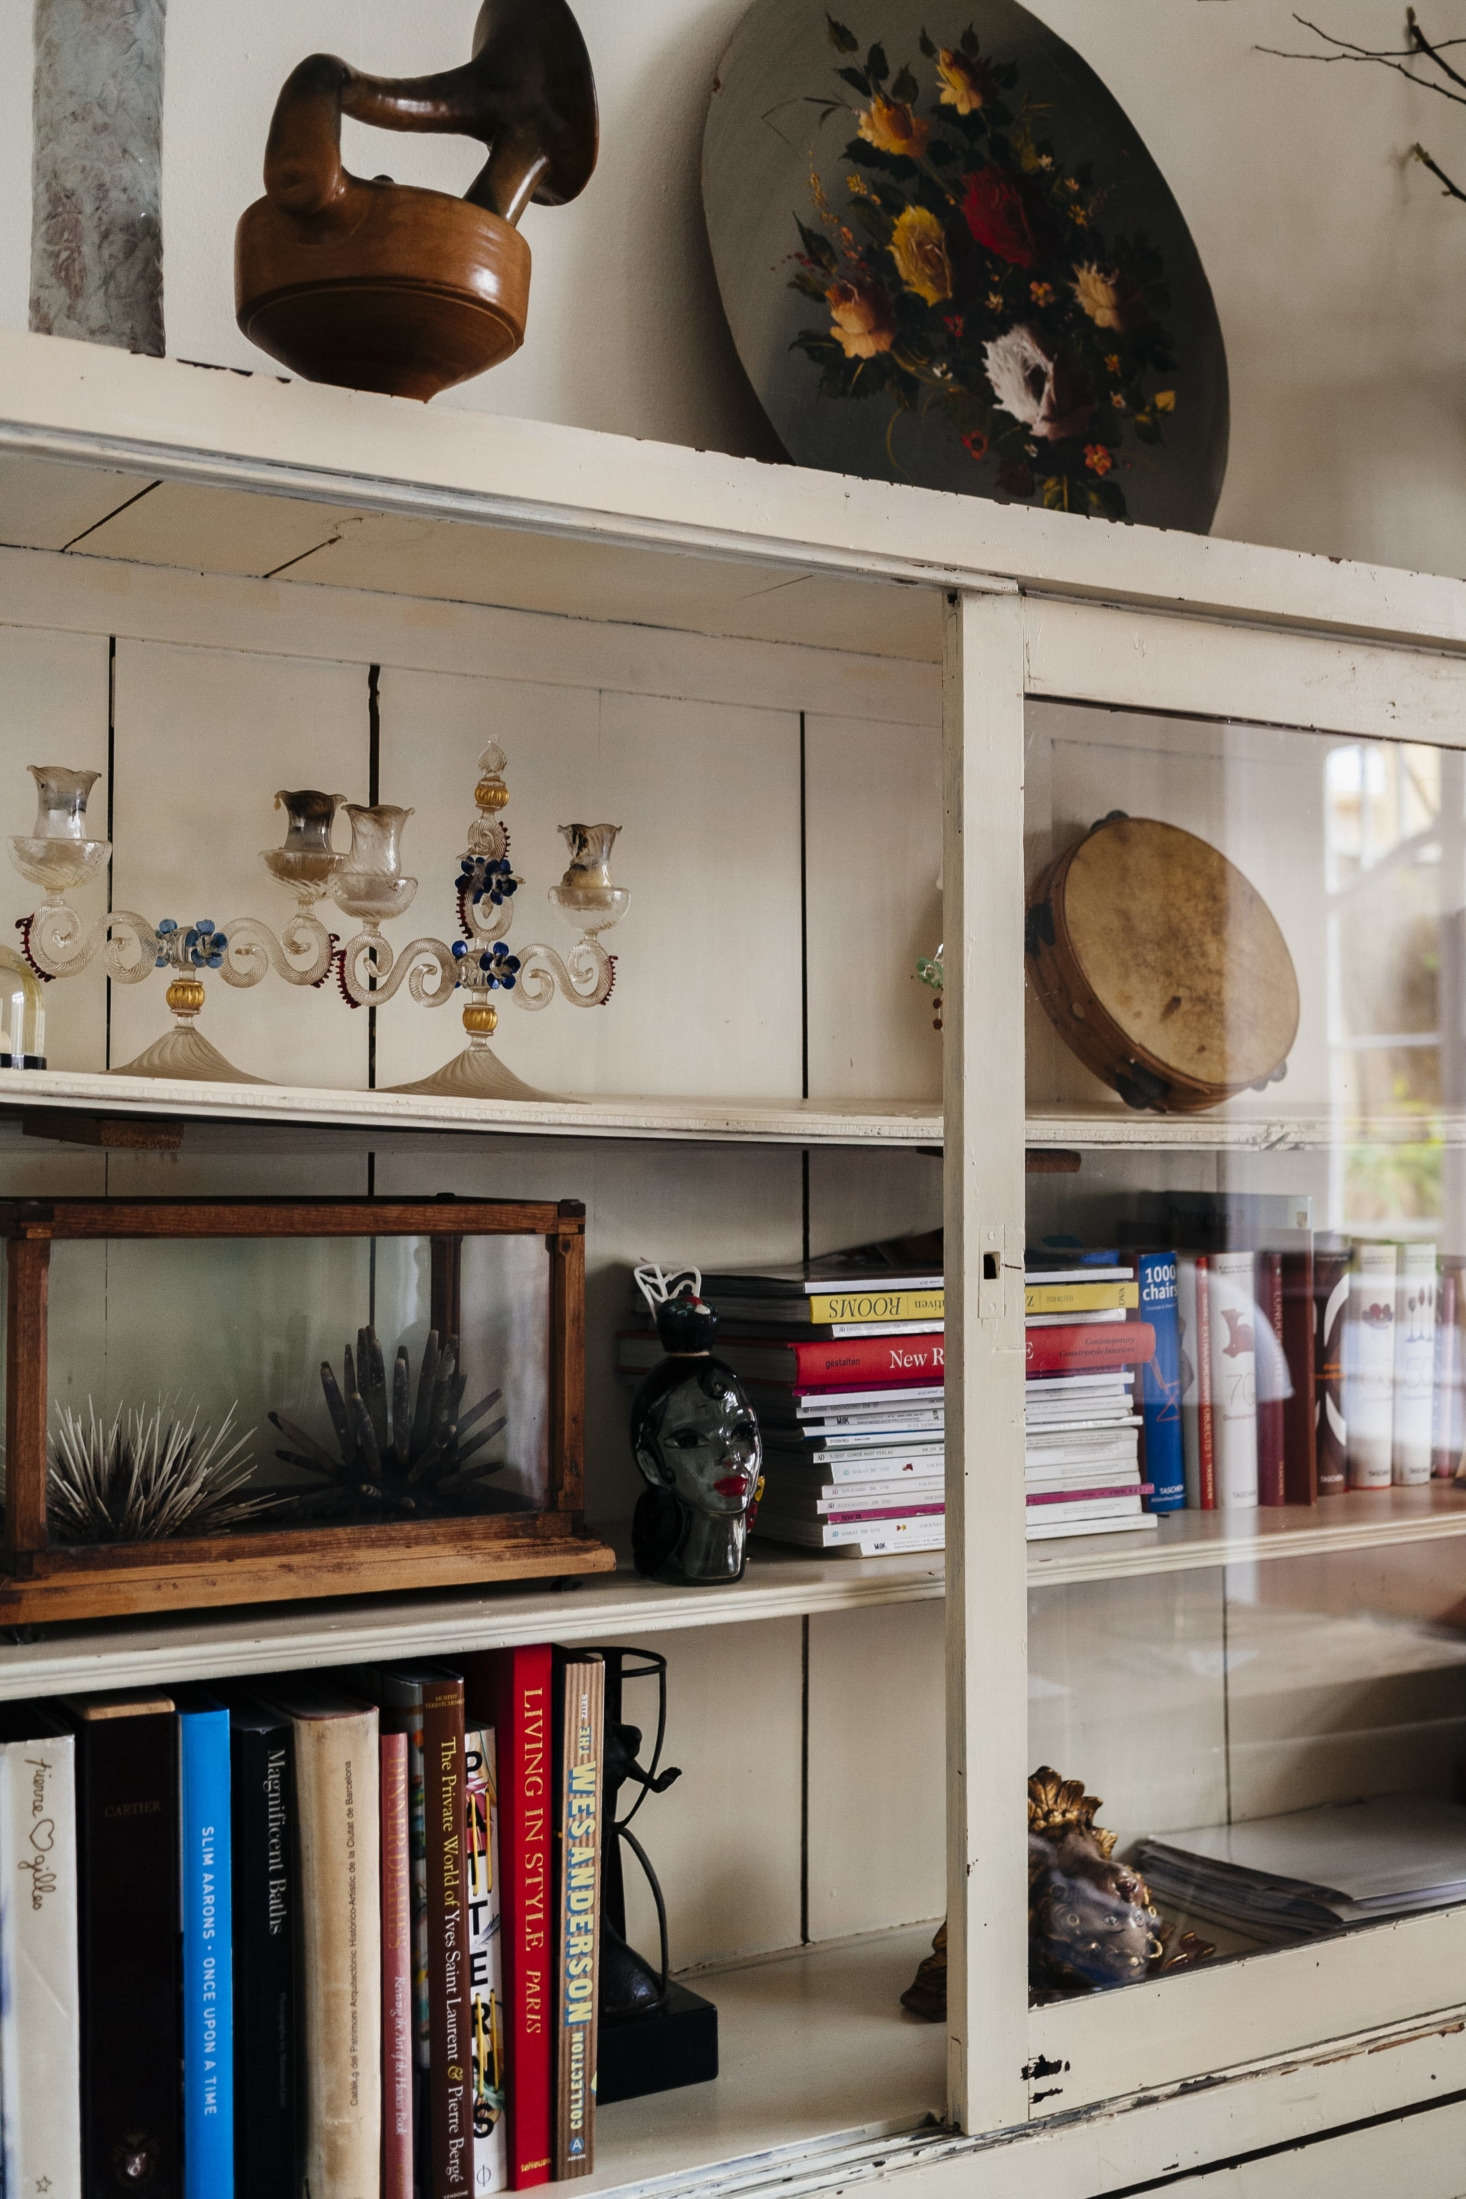 Design books and magazines are surrounded by some of the duo's latest finds, including a pair of Venetian glass candelabra and a Wardian-style terrarium case.